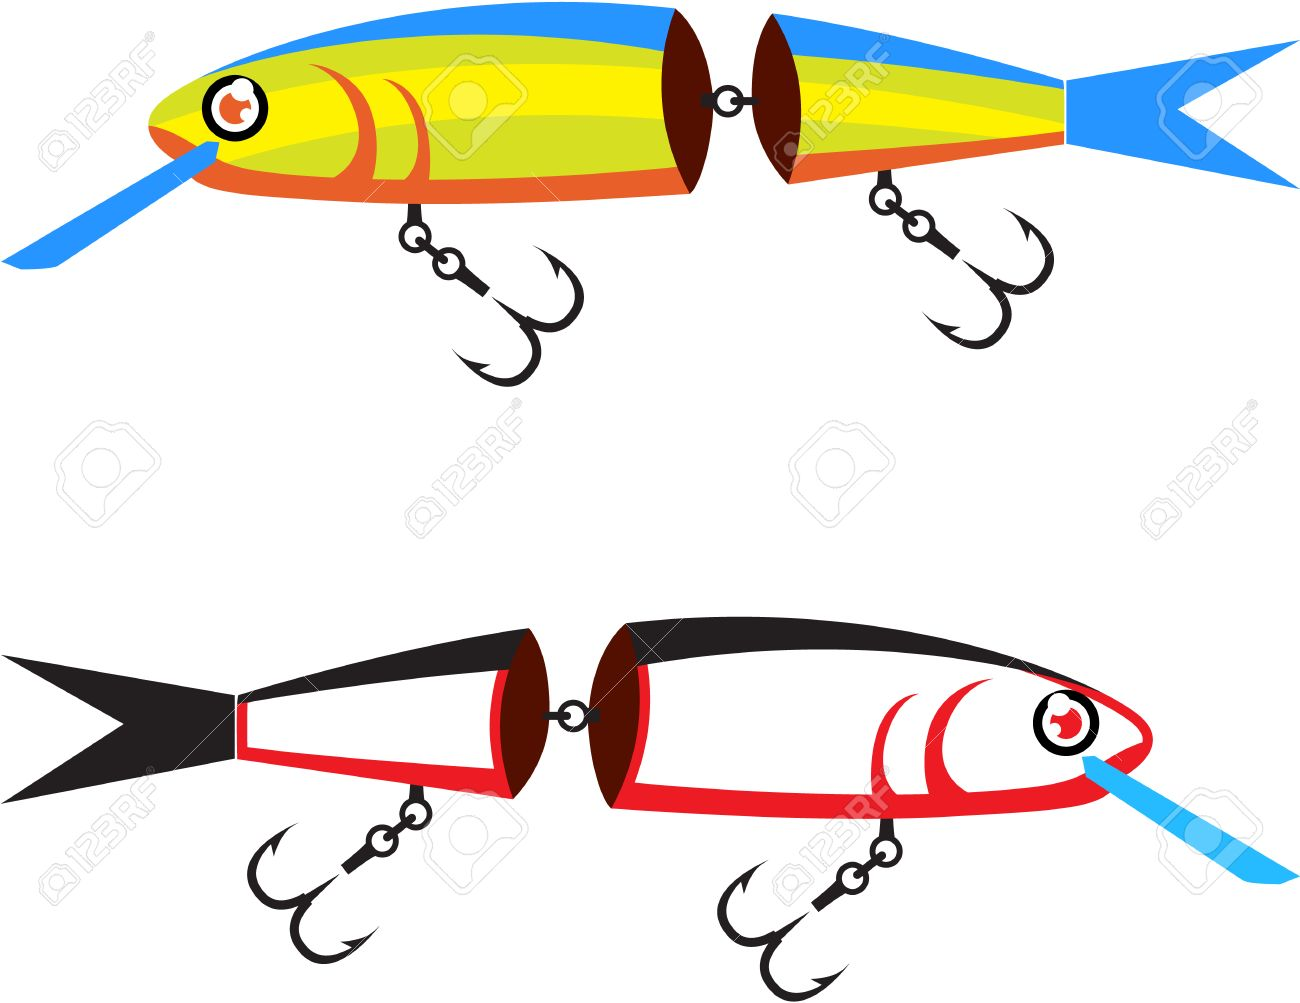 Fishing lure crank bait illustration clip.